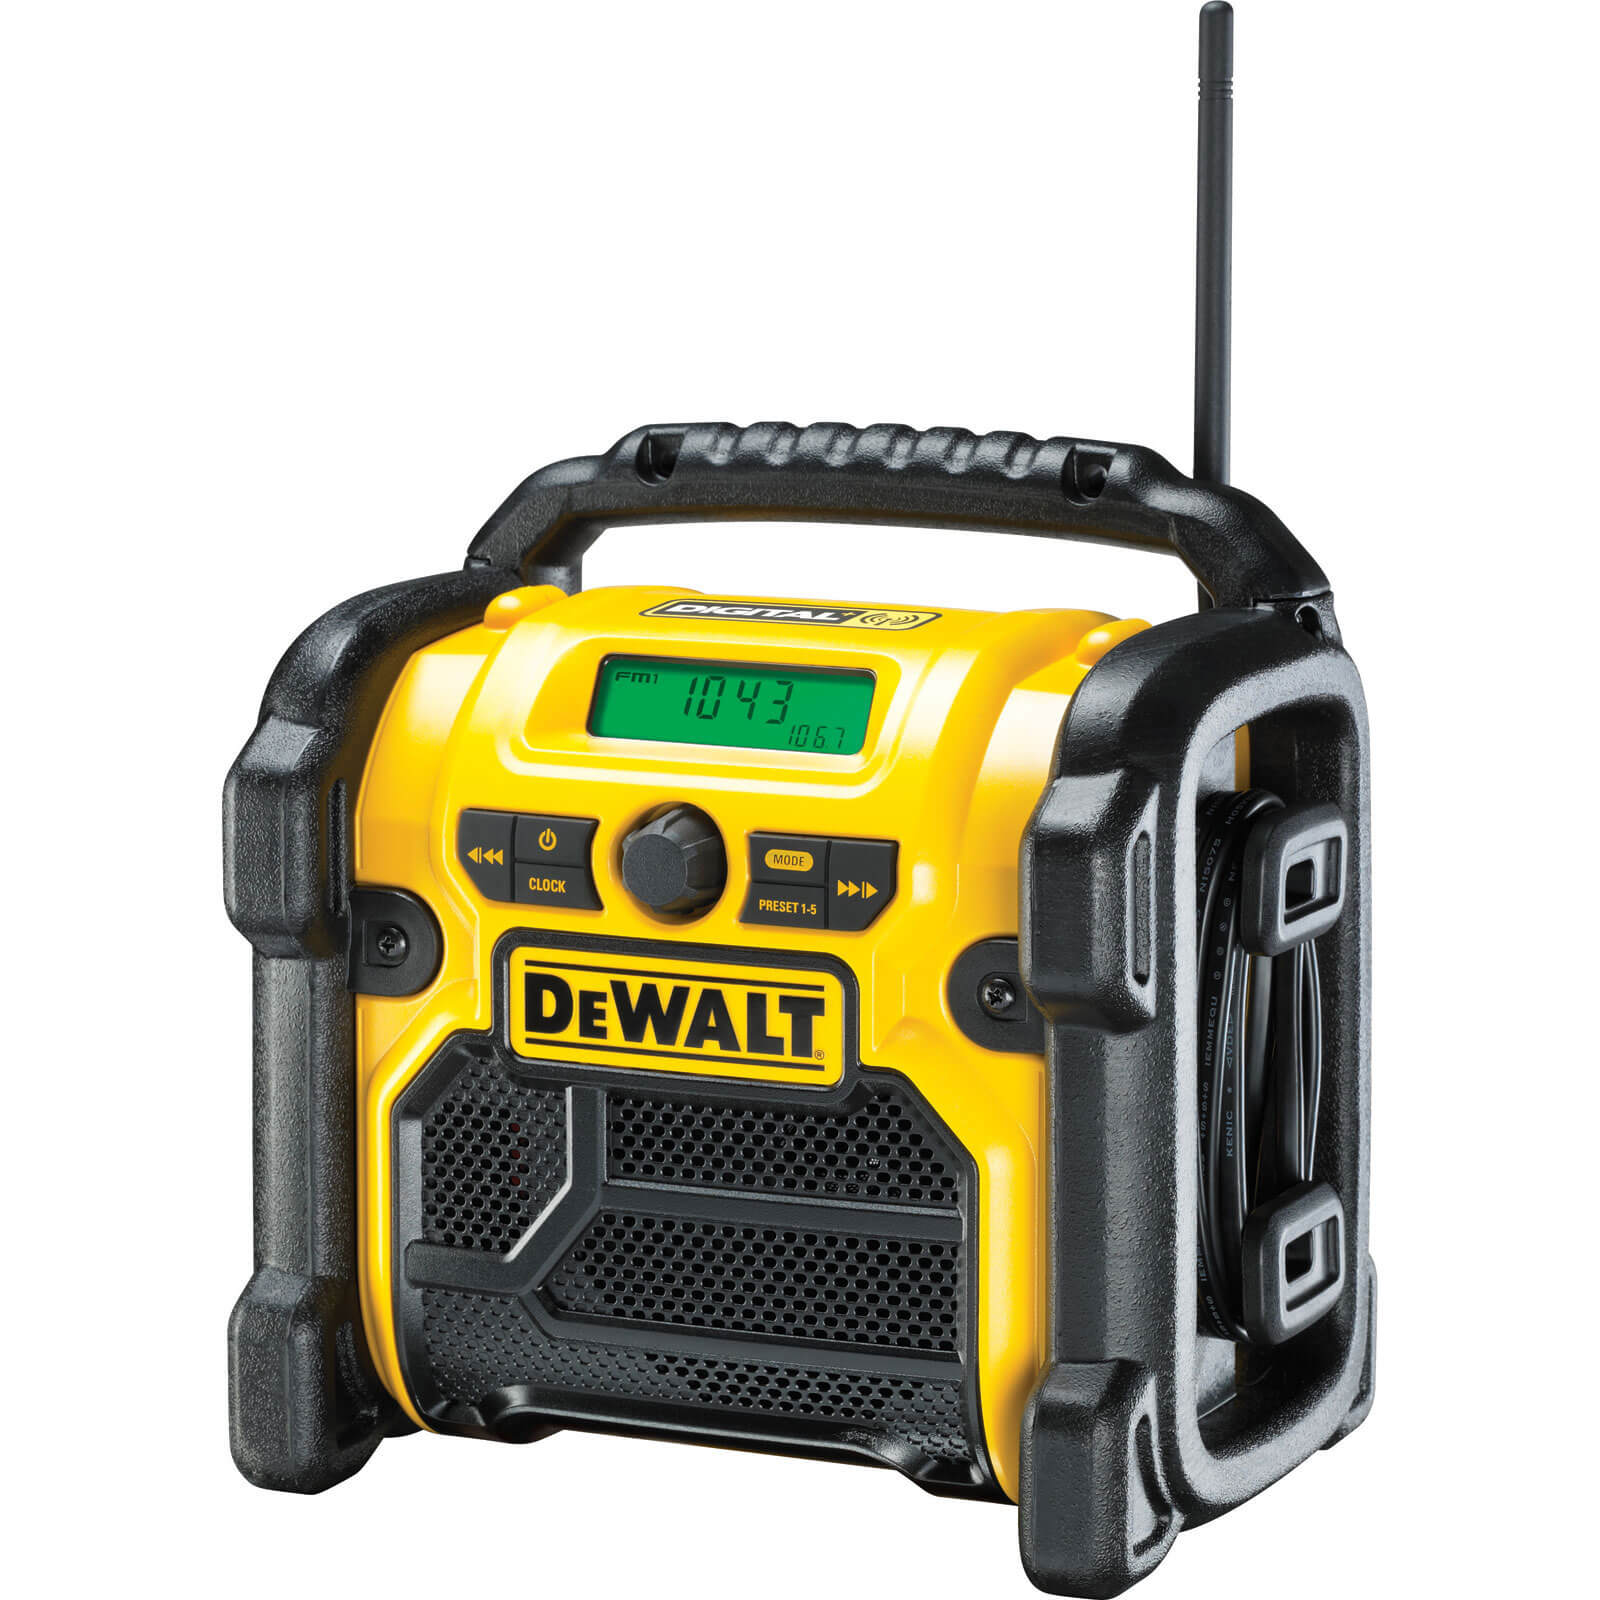 Image of DeWalt DCR020 XR DAB Job Site Workshop Radio 240v